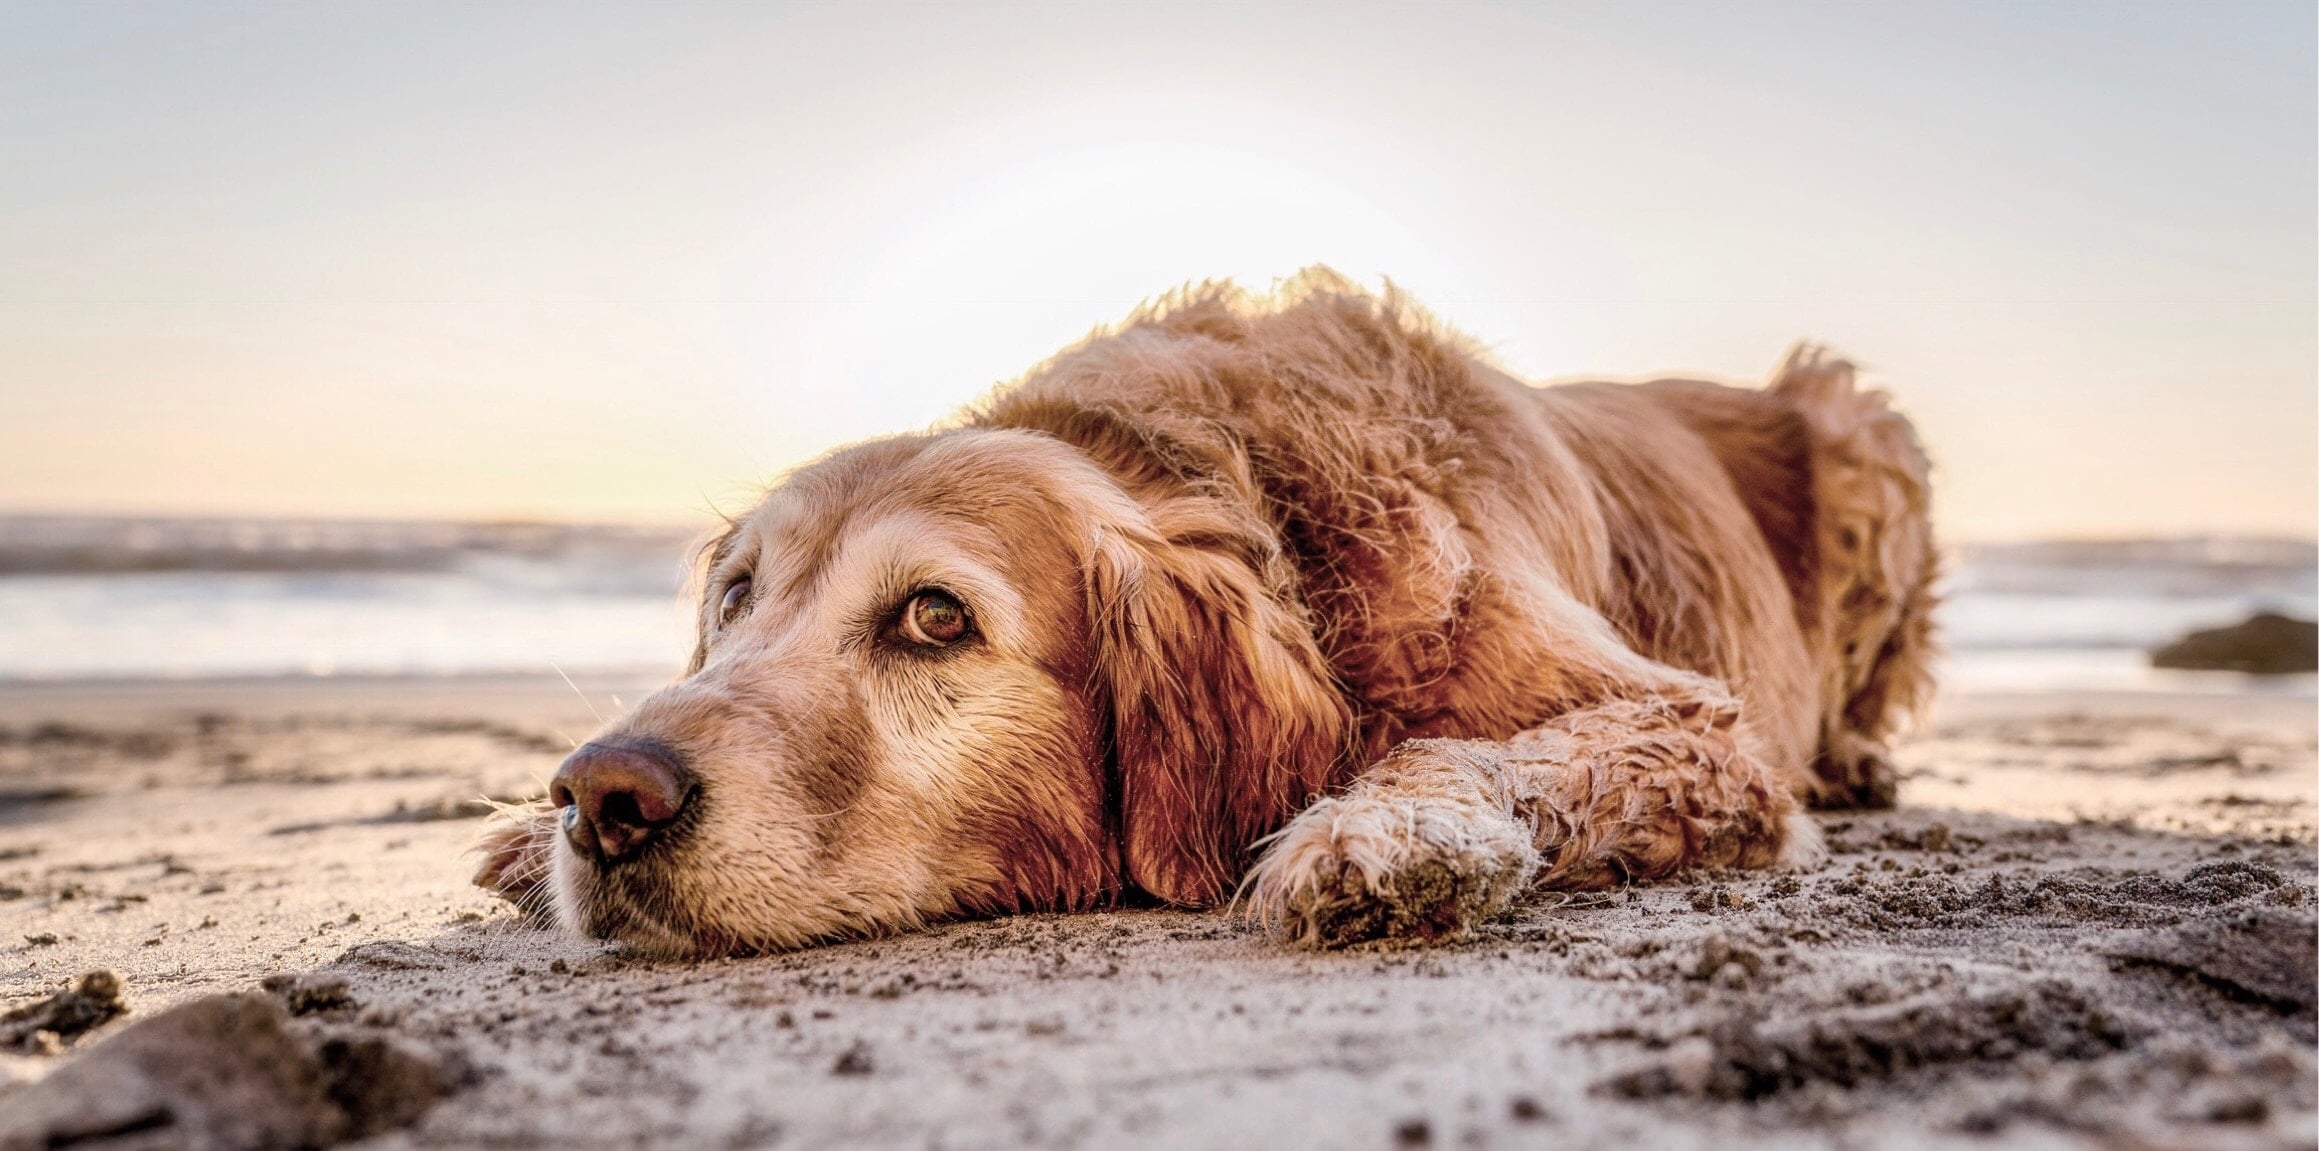 golden retriever dog lying on the beach